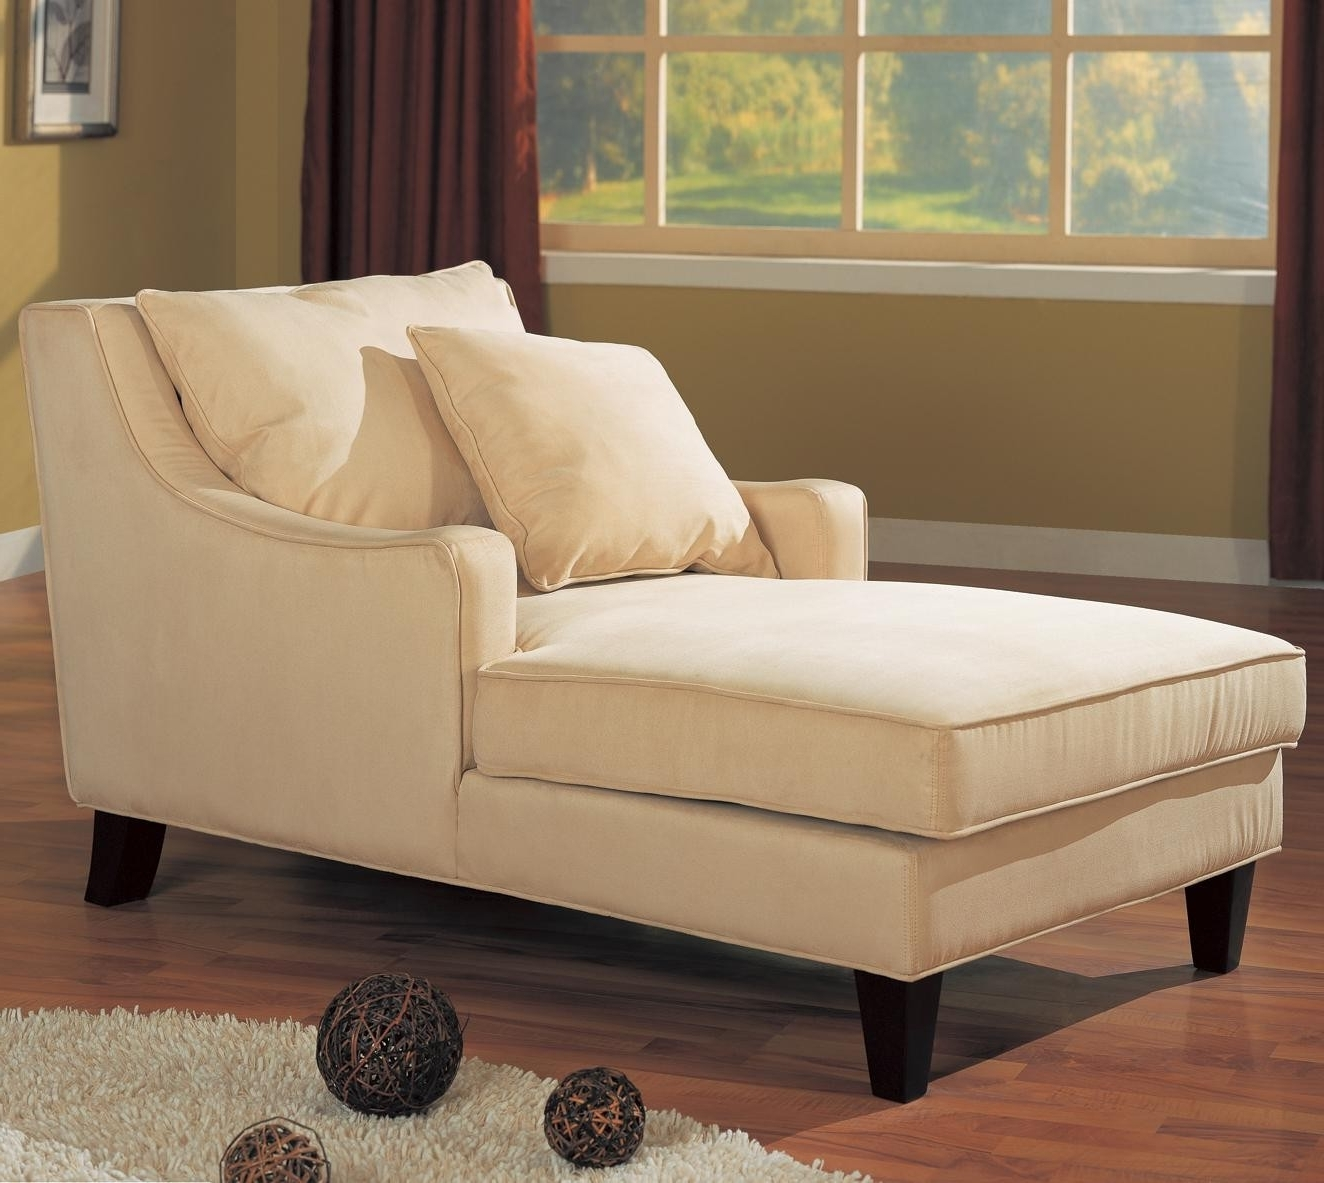 2020 Popular Bedroom Chaise Lounge Chairs